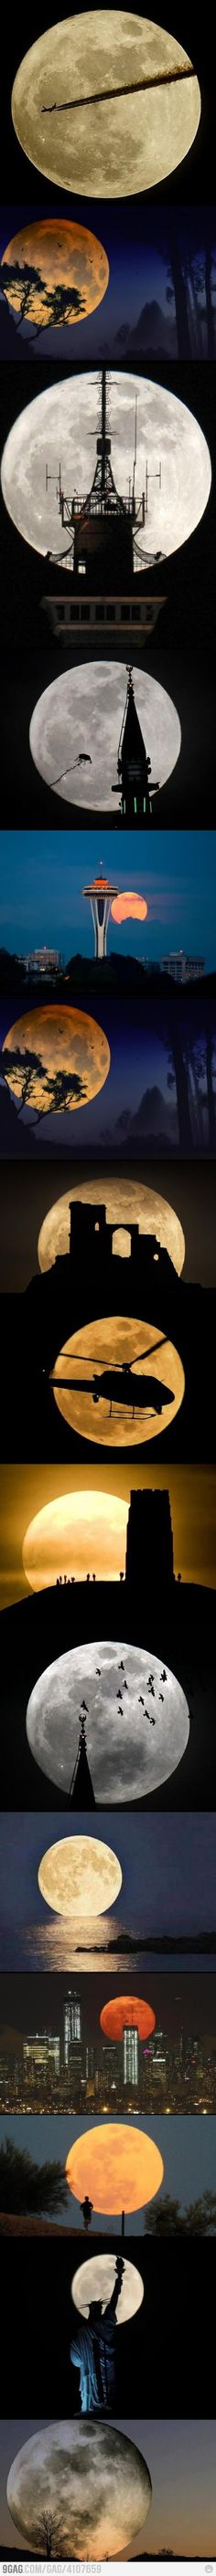 super moon - 5th May 2012